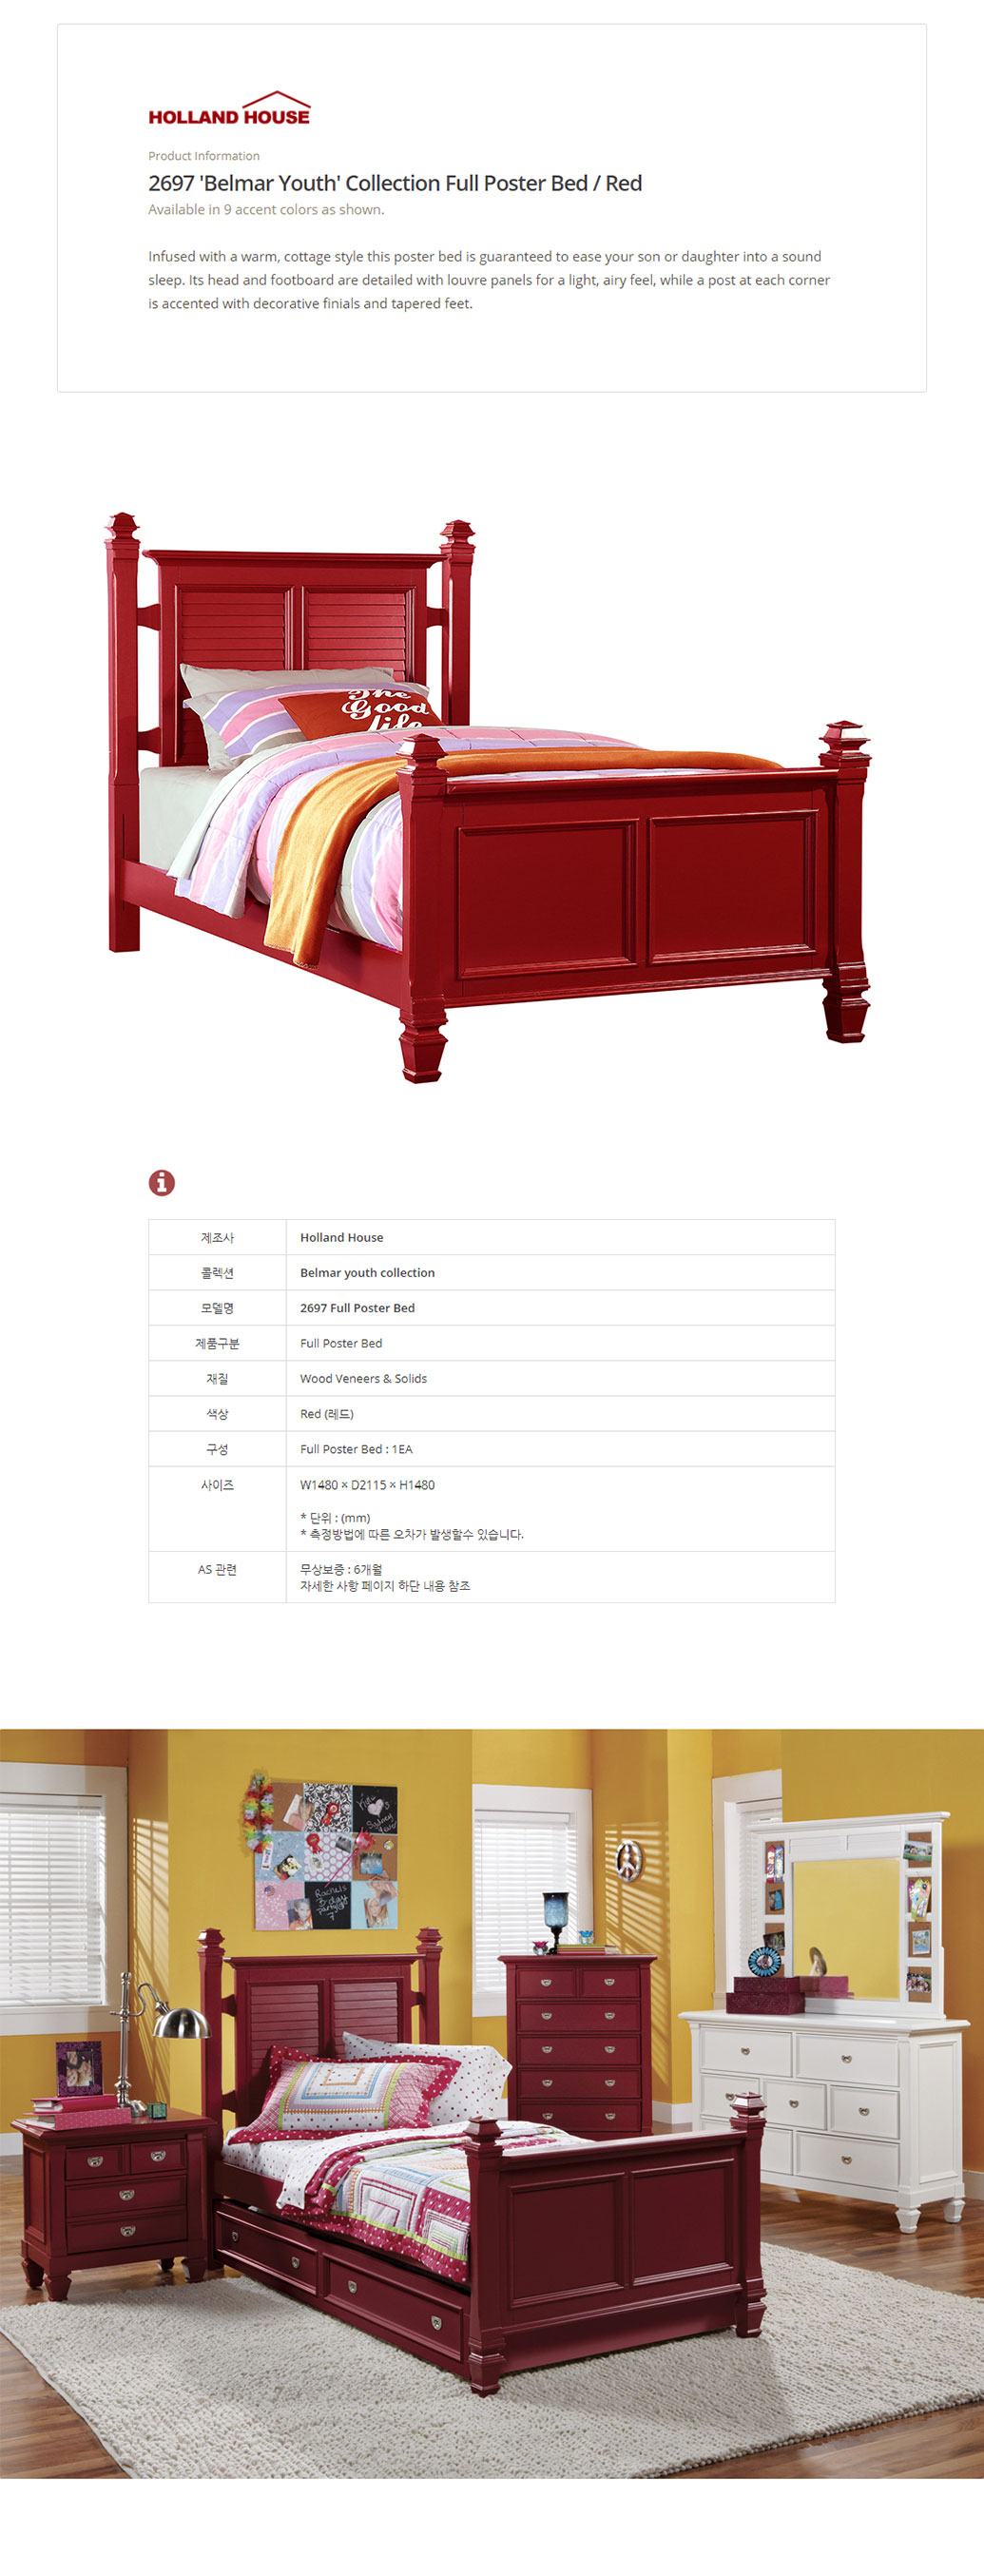 full_2697_bed_red_01_.jpg